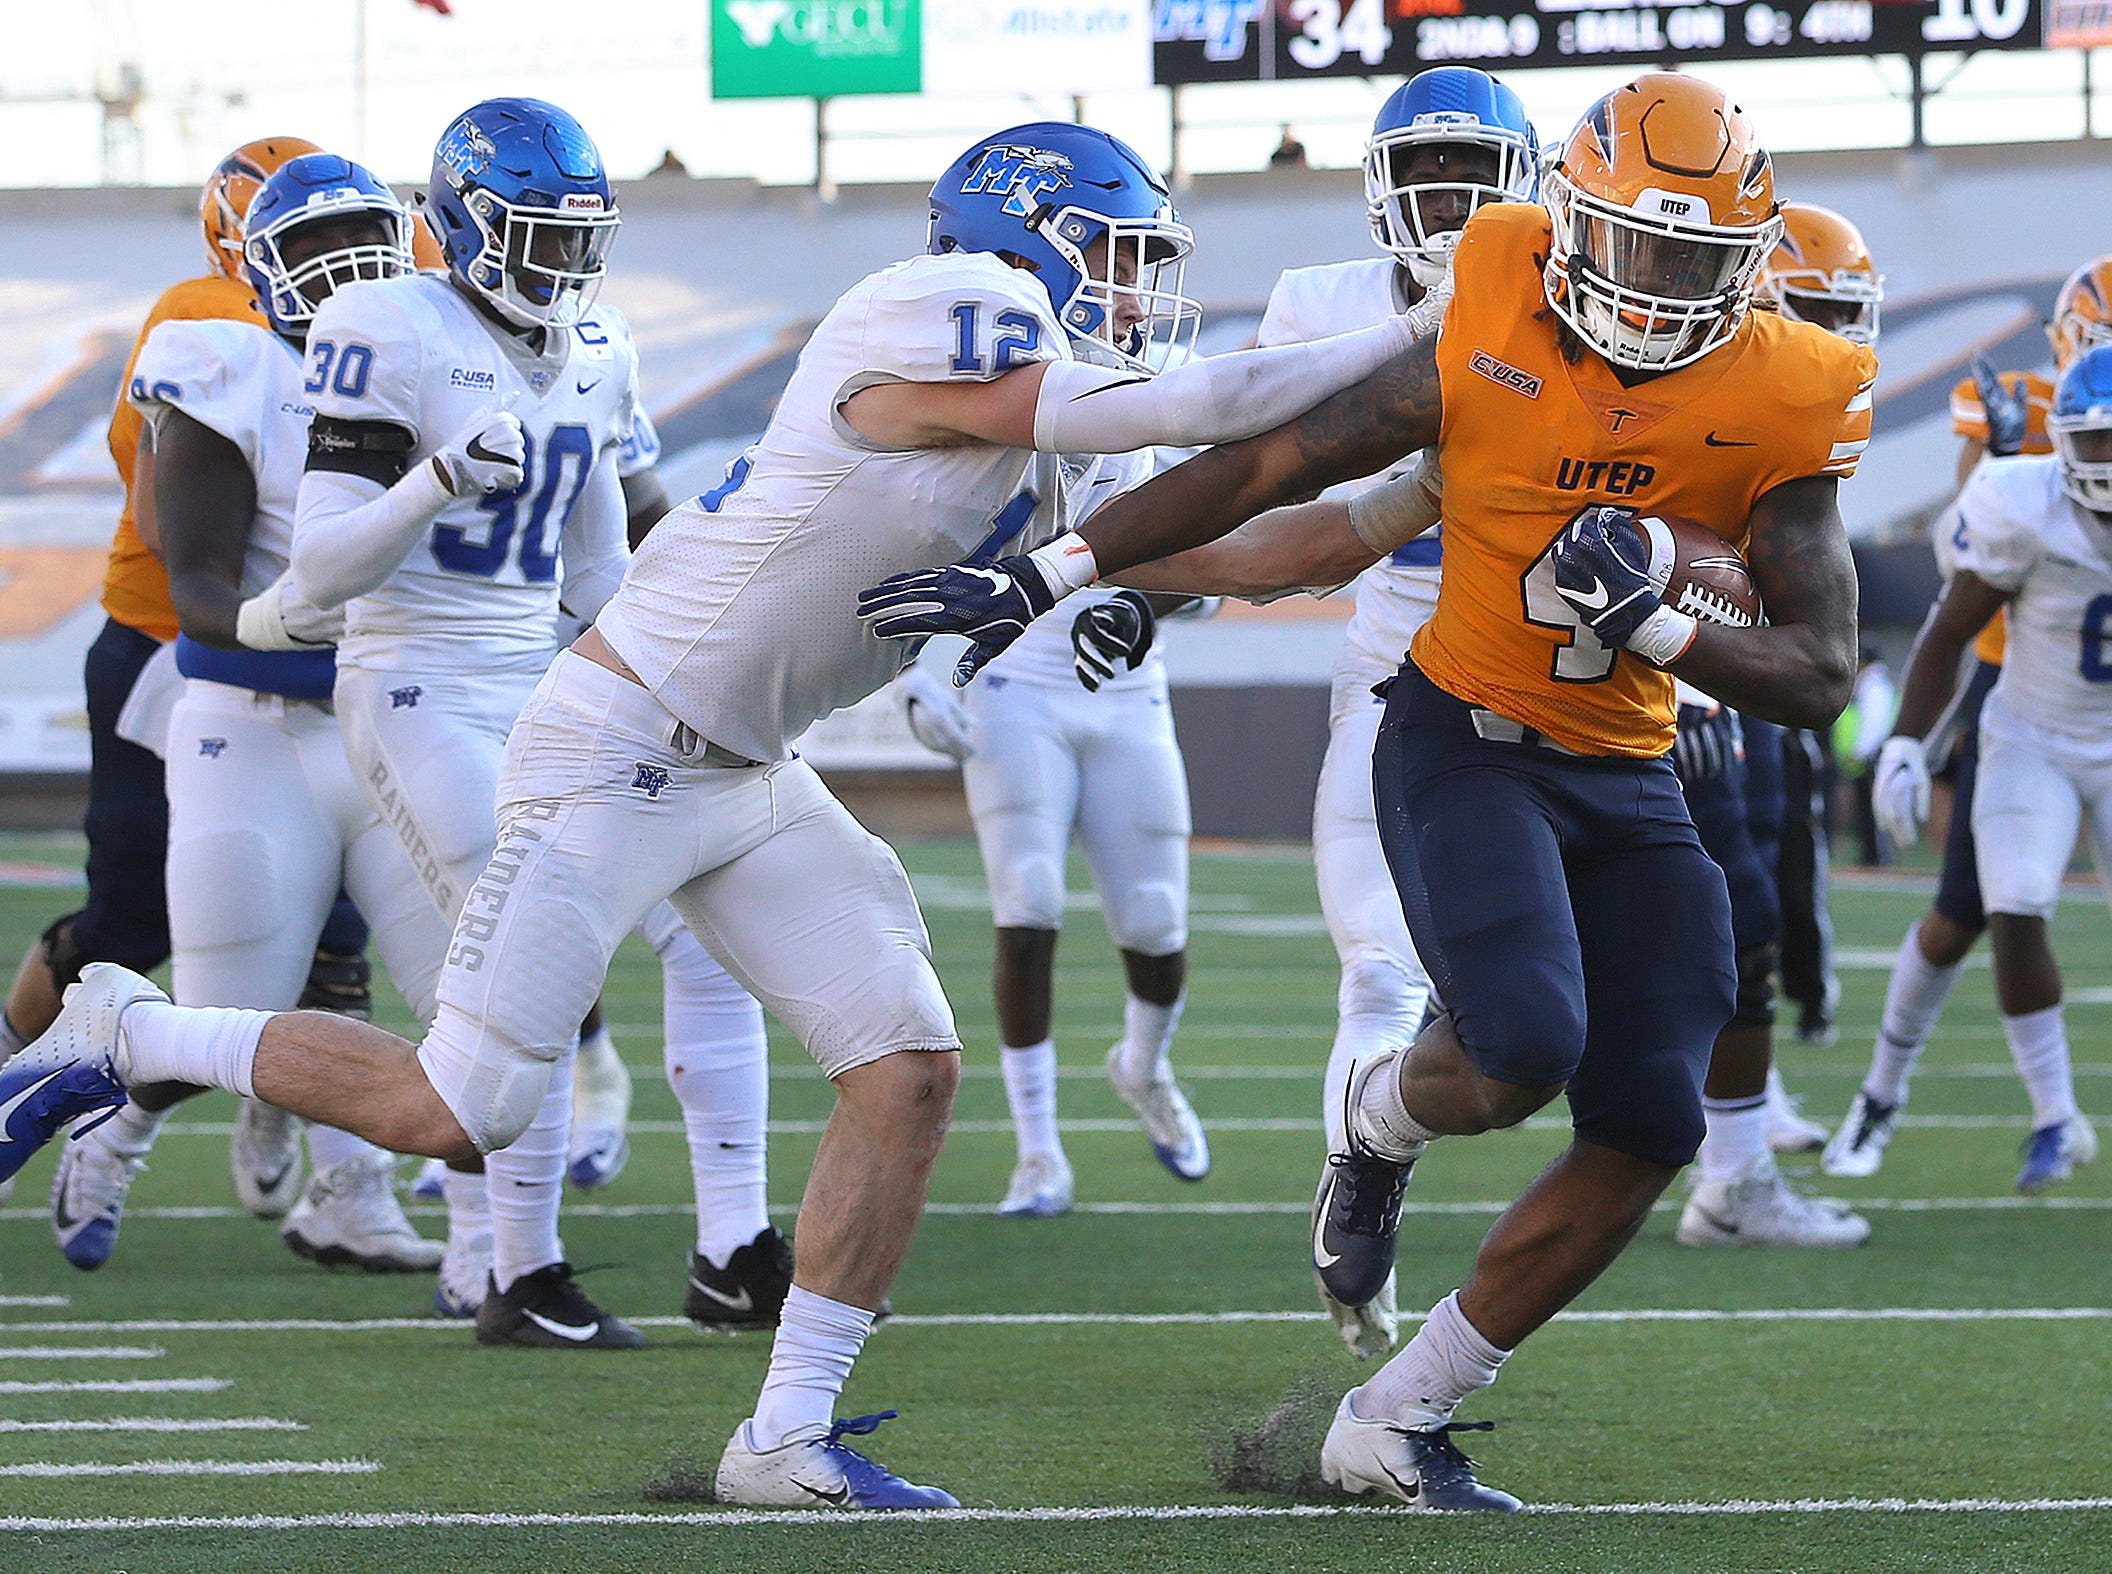 UTEP junior running back Quardraiz Wadley steps into the end zone past Middle Tennessee's Reed Blankenship on Saturday at Sun Bowl Stadium. UTEP lost to the Blue Raiders 48-32.